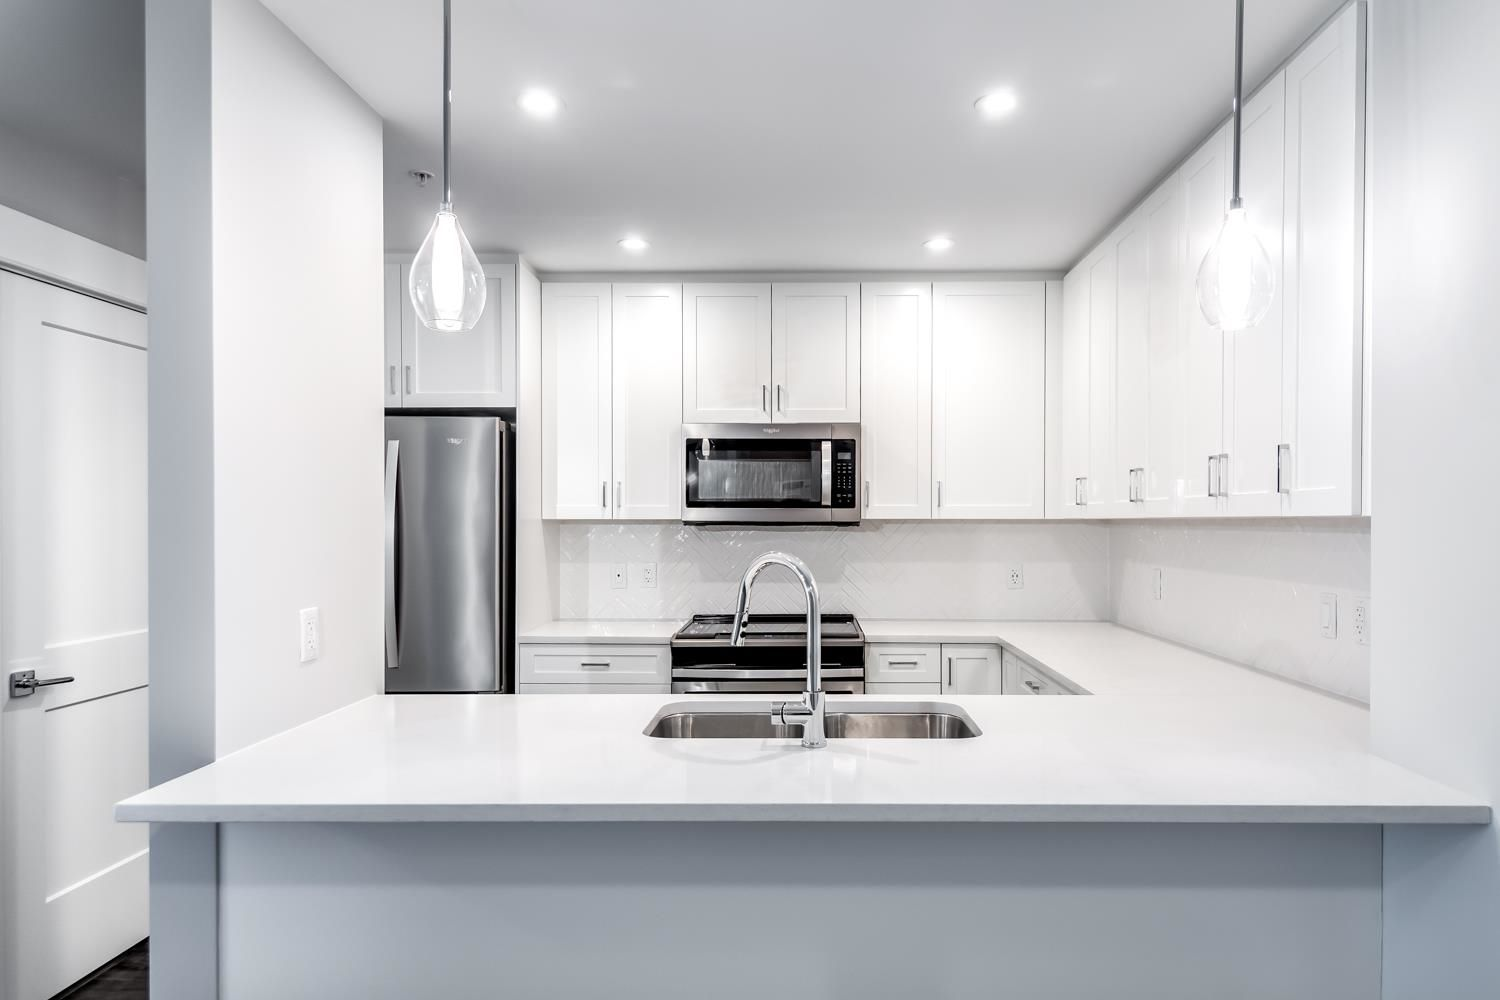 """Main Photo: 4619 2180 KELLY Avenue in Port Coquitlam: Central Pt Coquitlam Condo for sale in """"Montrose Square"""" : MLS®# R2613997"""